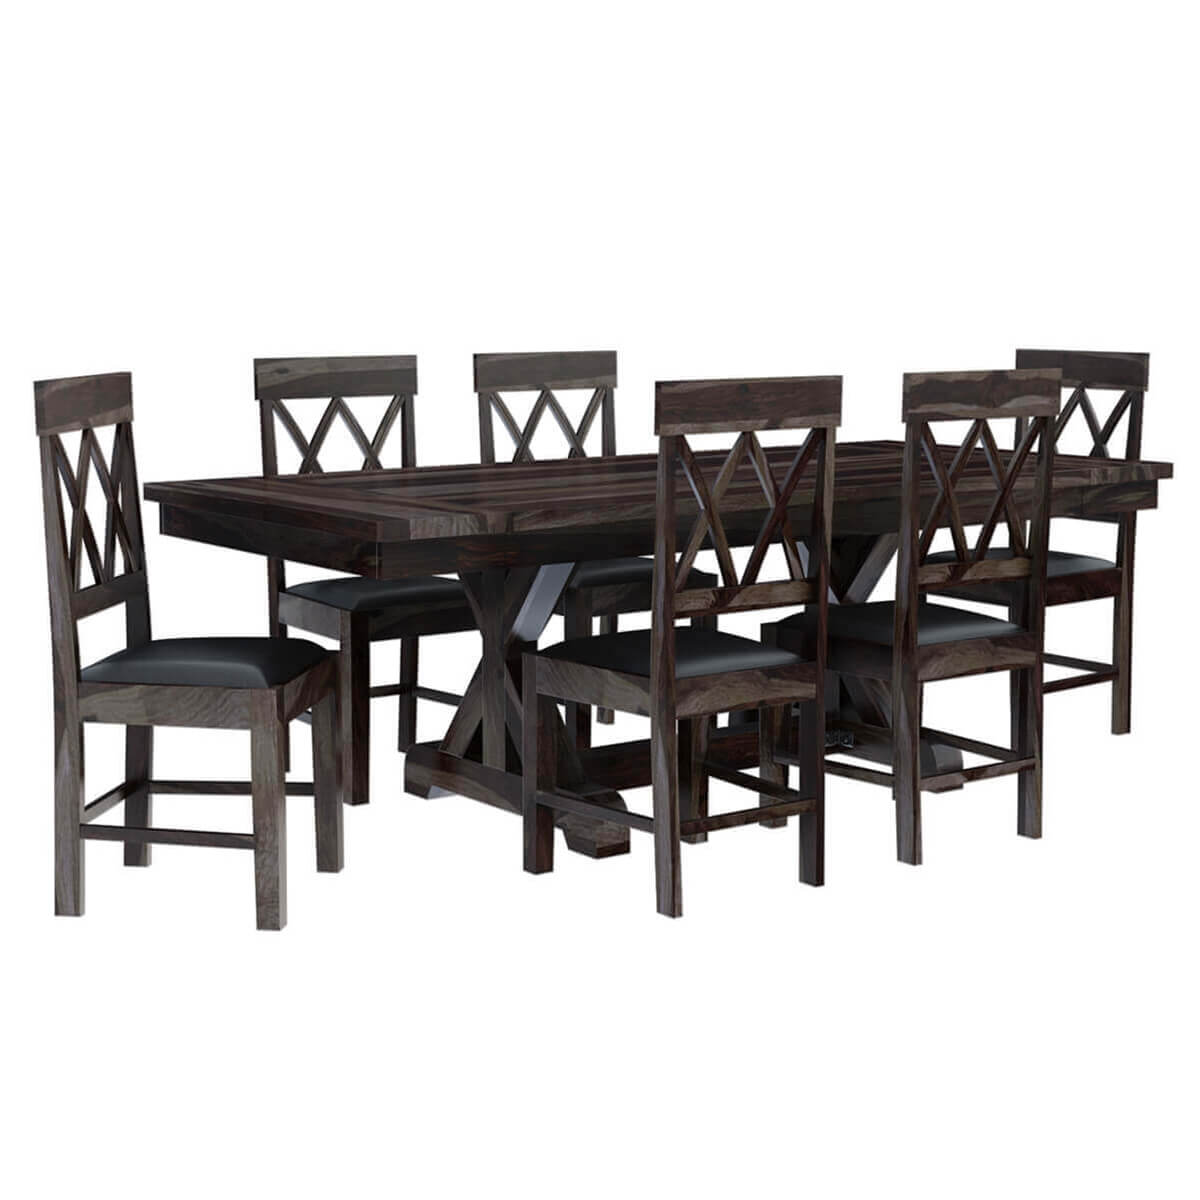 Antwerp Farmhouse Solid Wood Extendable Dining Table